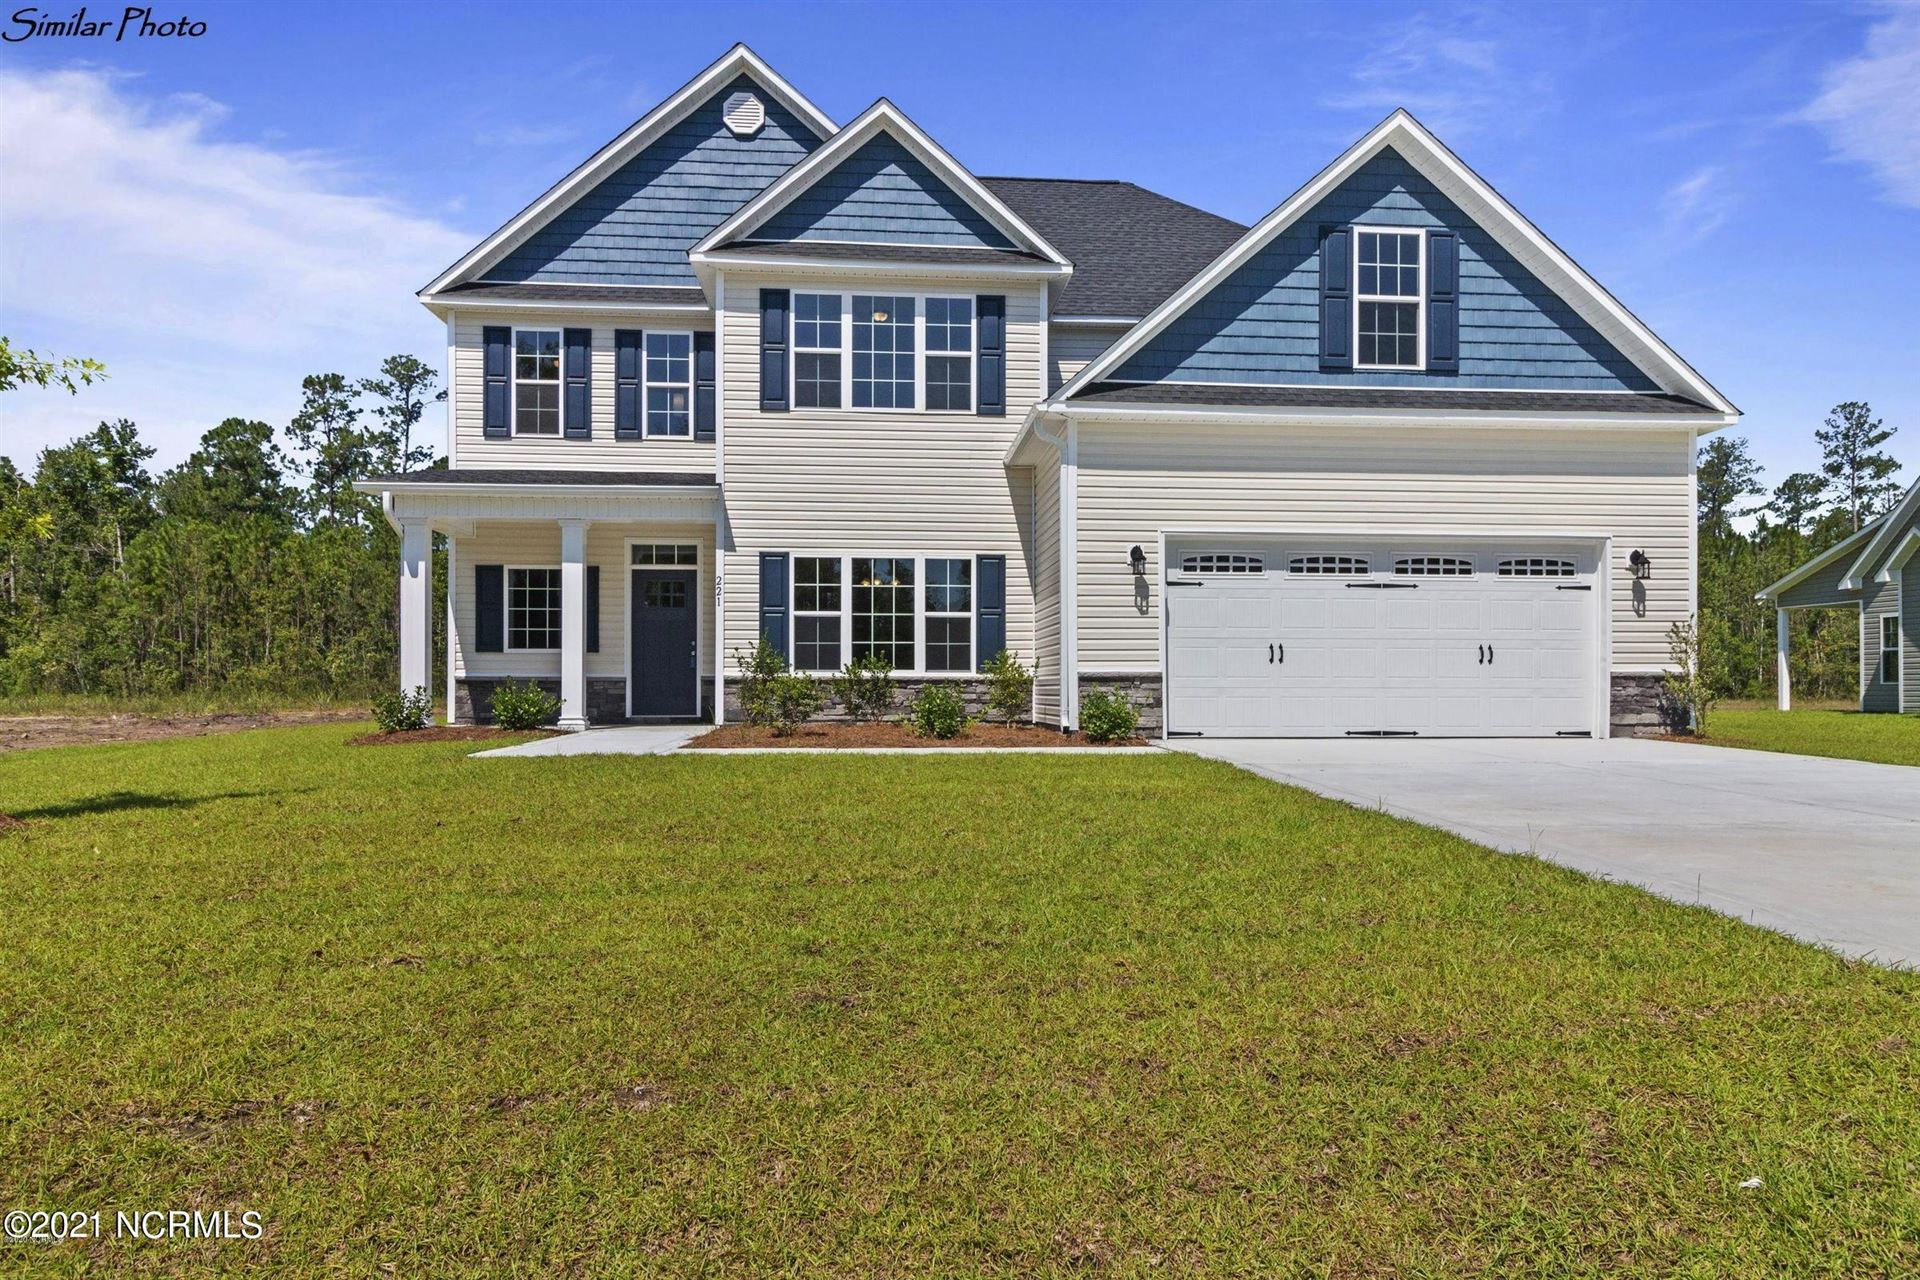 Photo of 302 Catboat Way, Sneads Ferry, NC 28460 (MLS # 100255101)